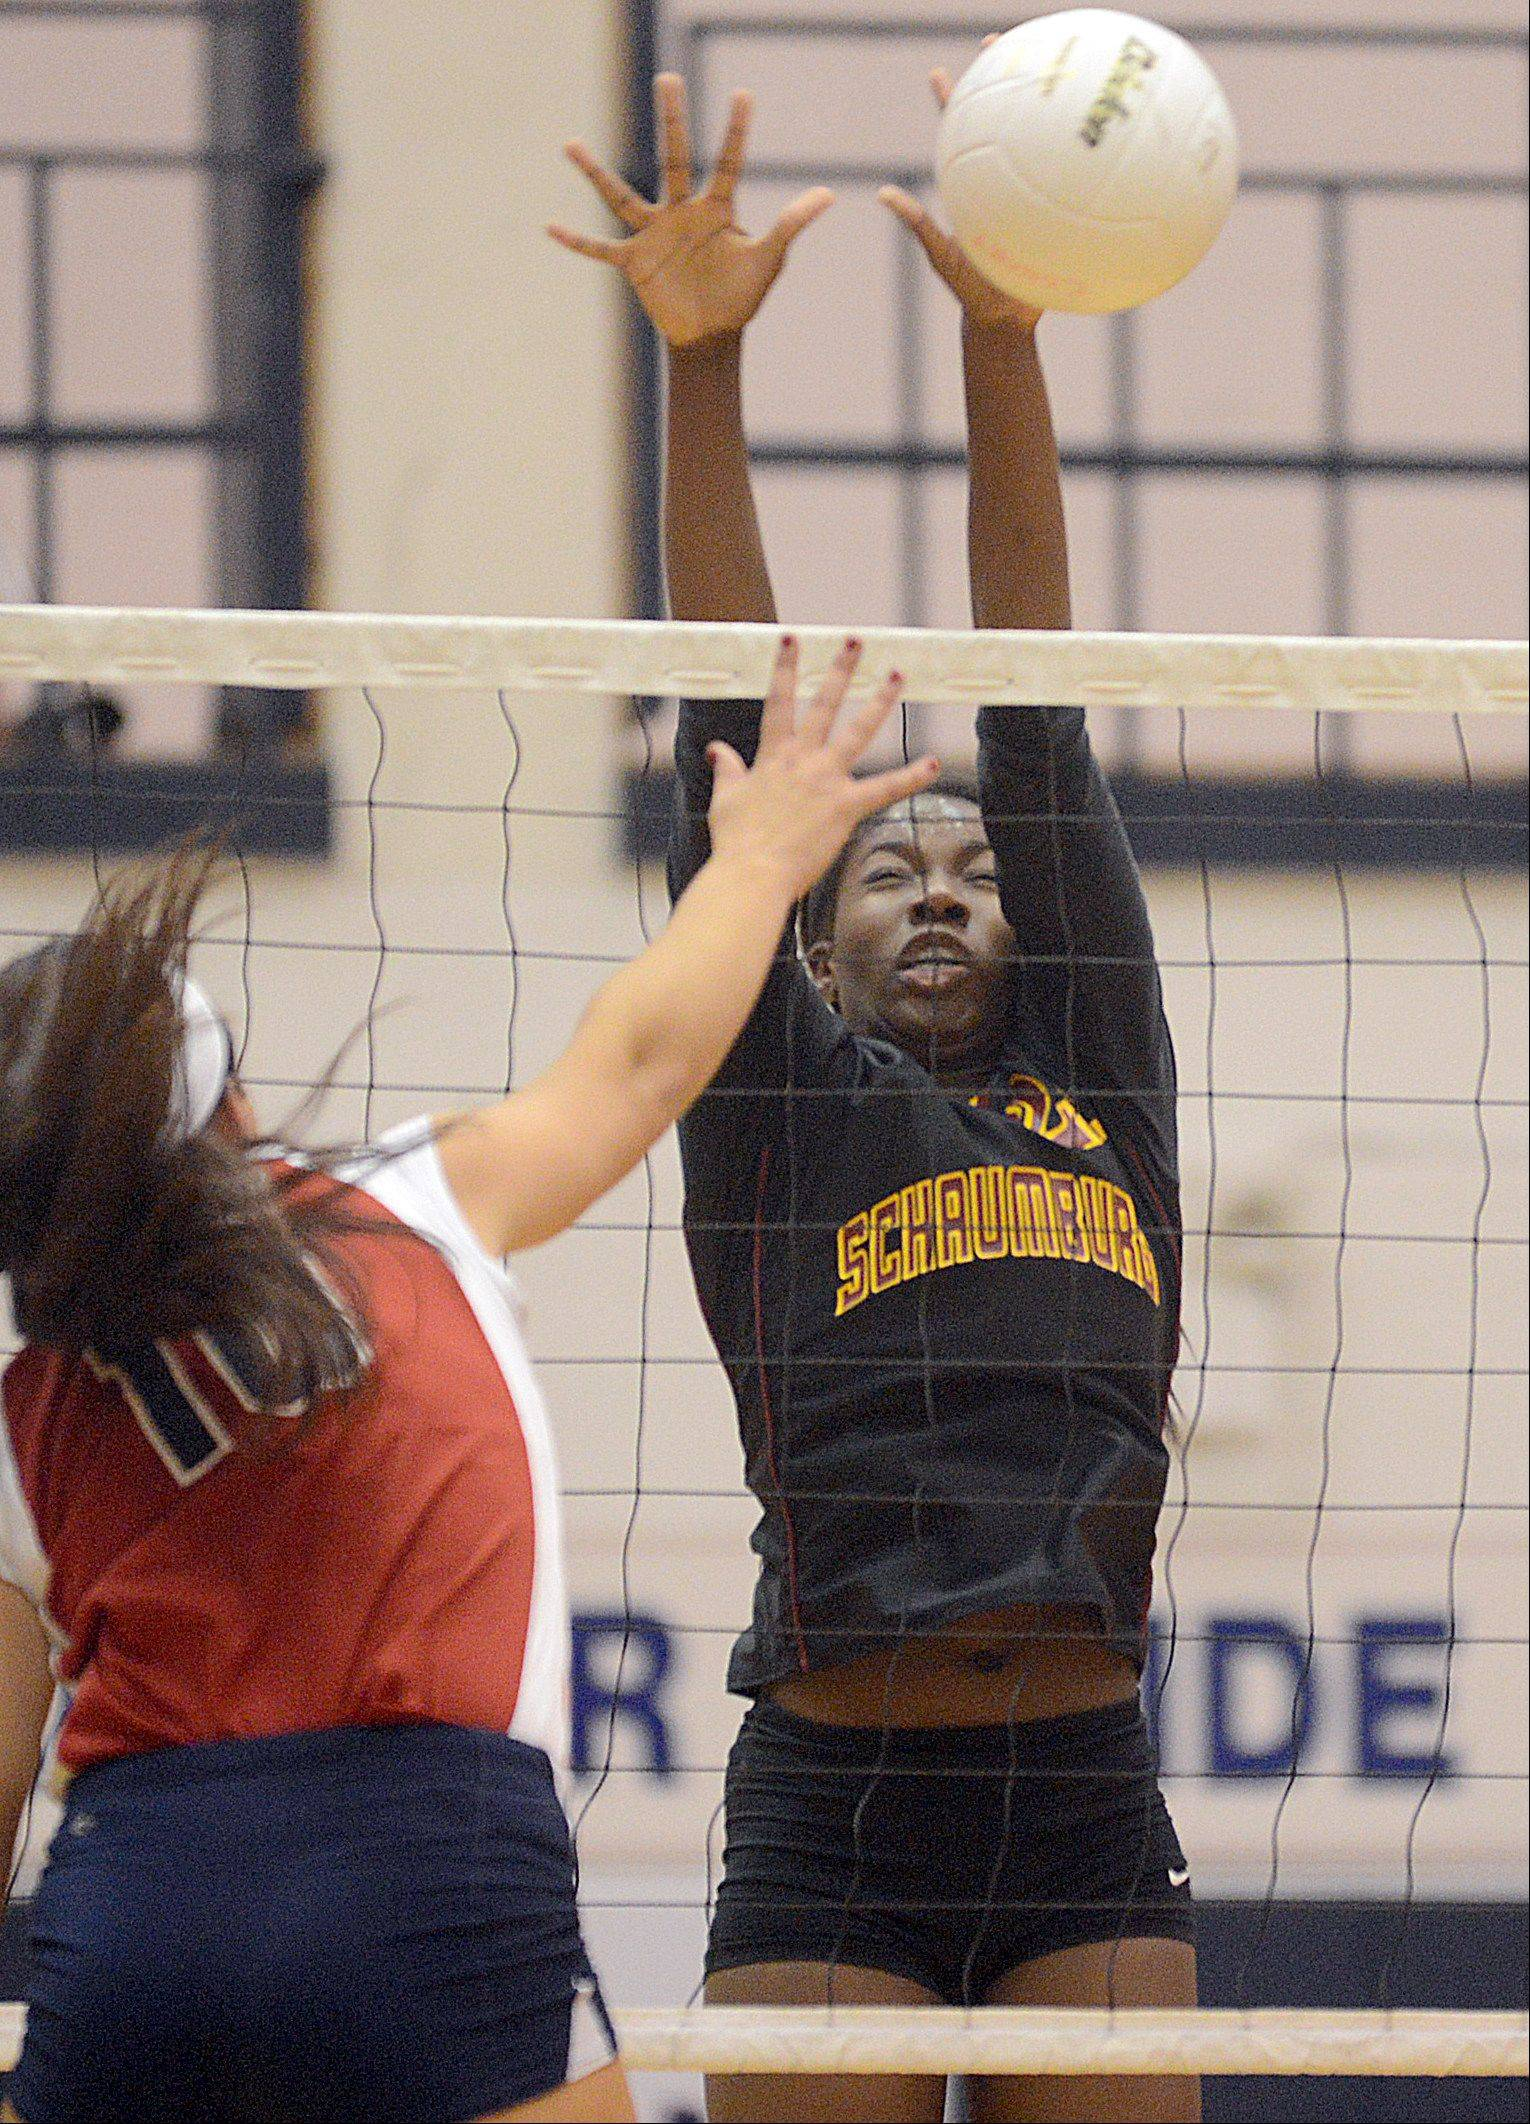 Conant's Alissa Wochal, left, tries to get the ball past Schaumburg's Oyinkan Akinola during varsity volleyball at Conant on Tuesday night.